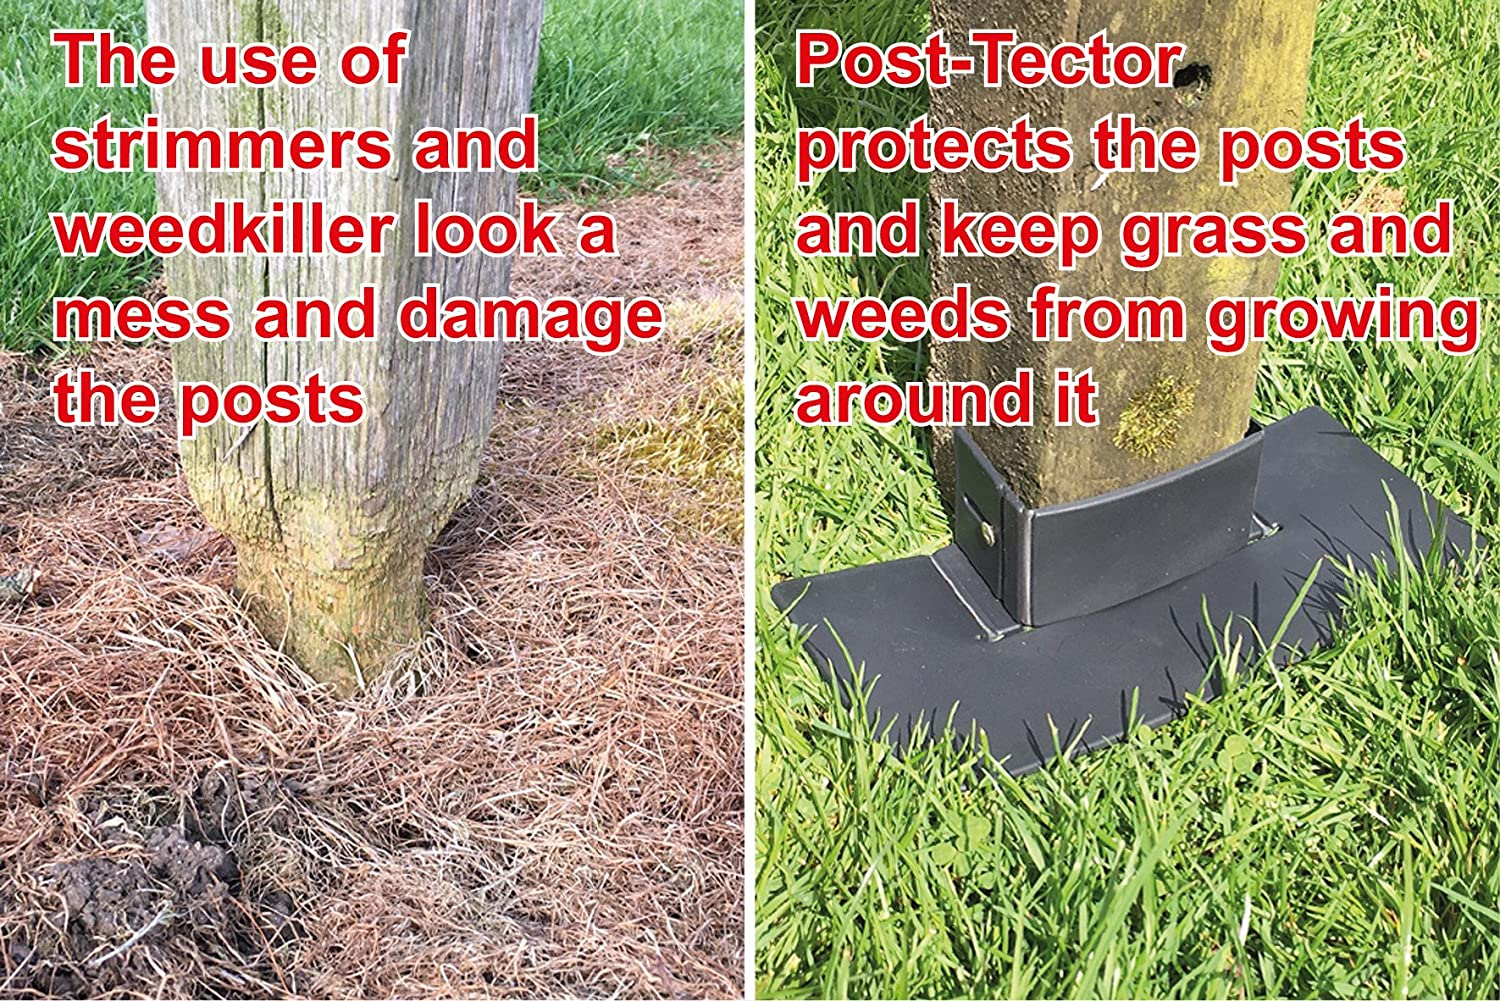 Free UK Postage Fits 3 or 4 Post X8146 Grass /& Weed Control Maintenance Proops 5x Post-Tector Fence Post Saver Protector Guard Shields